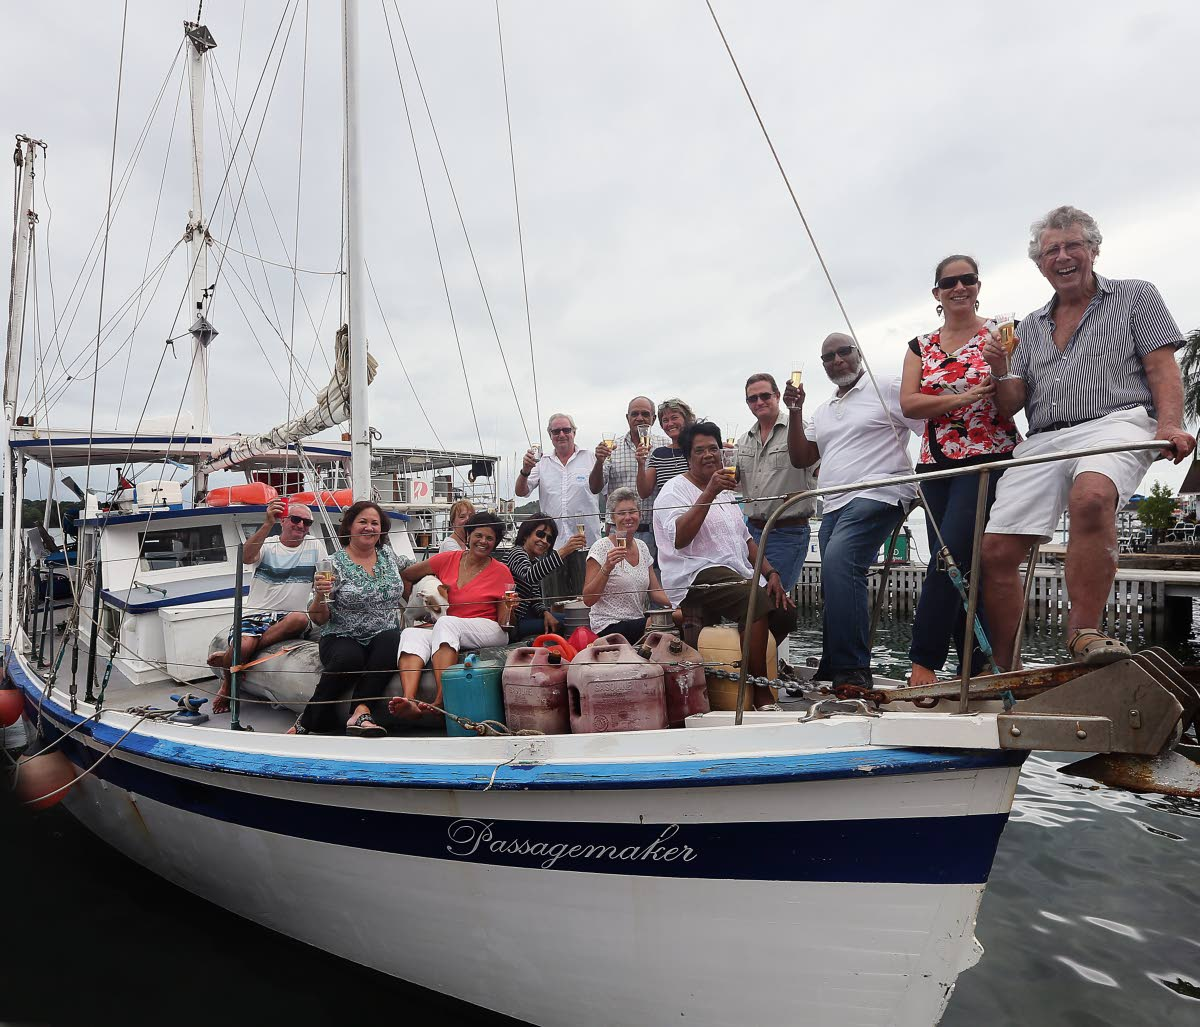 Sea conquerer: Adventurer Peter Quentrall-Thomas celebrates aboard the Passagemaker in Chaguaramas on Friday with his wife and friends after sailing across the Atlantic Ocean.